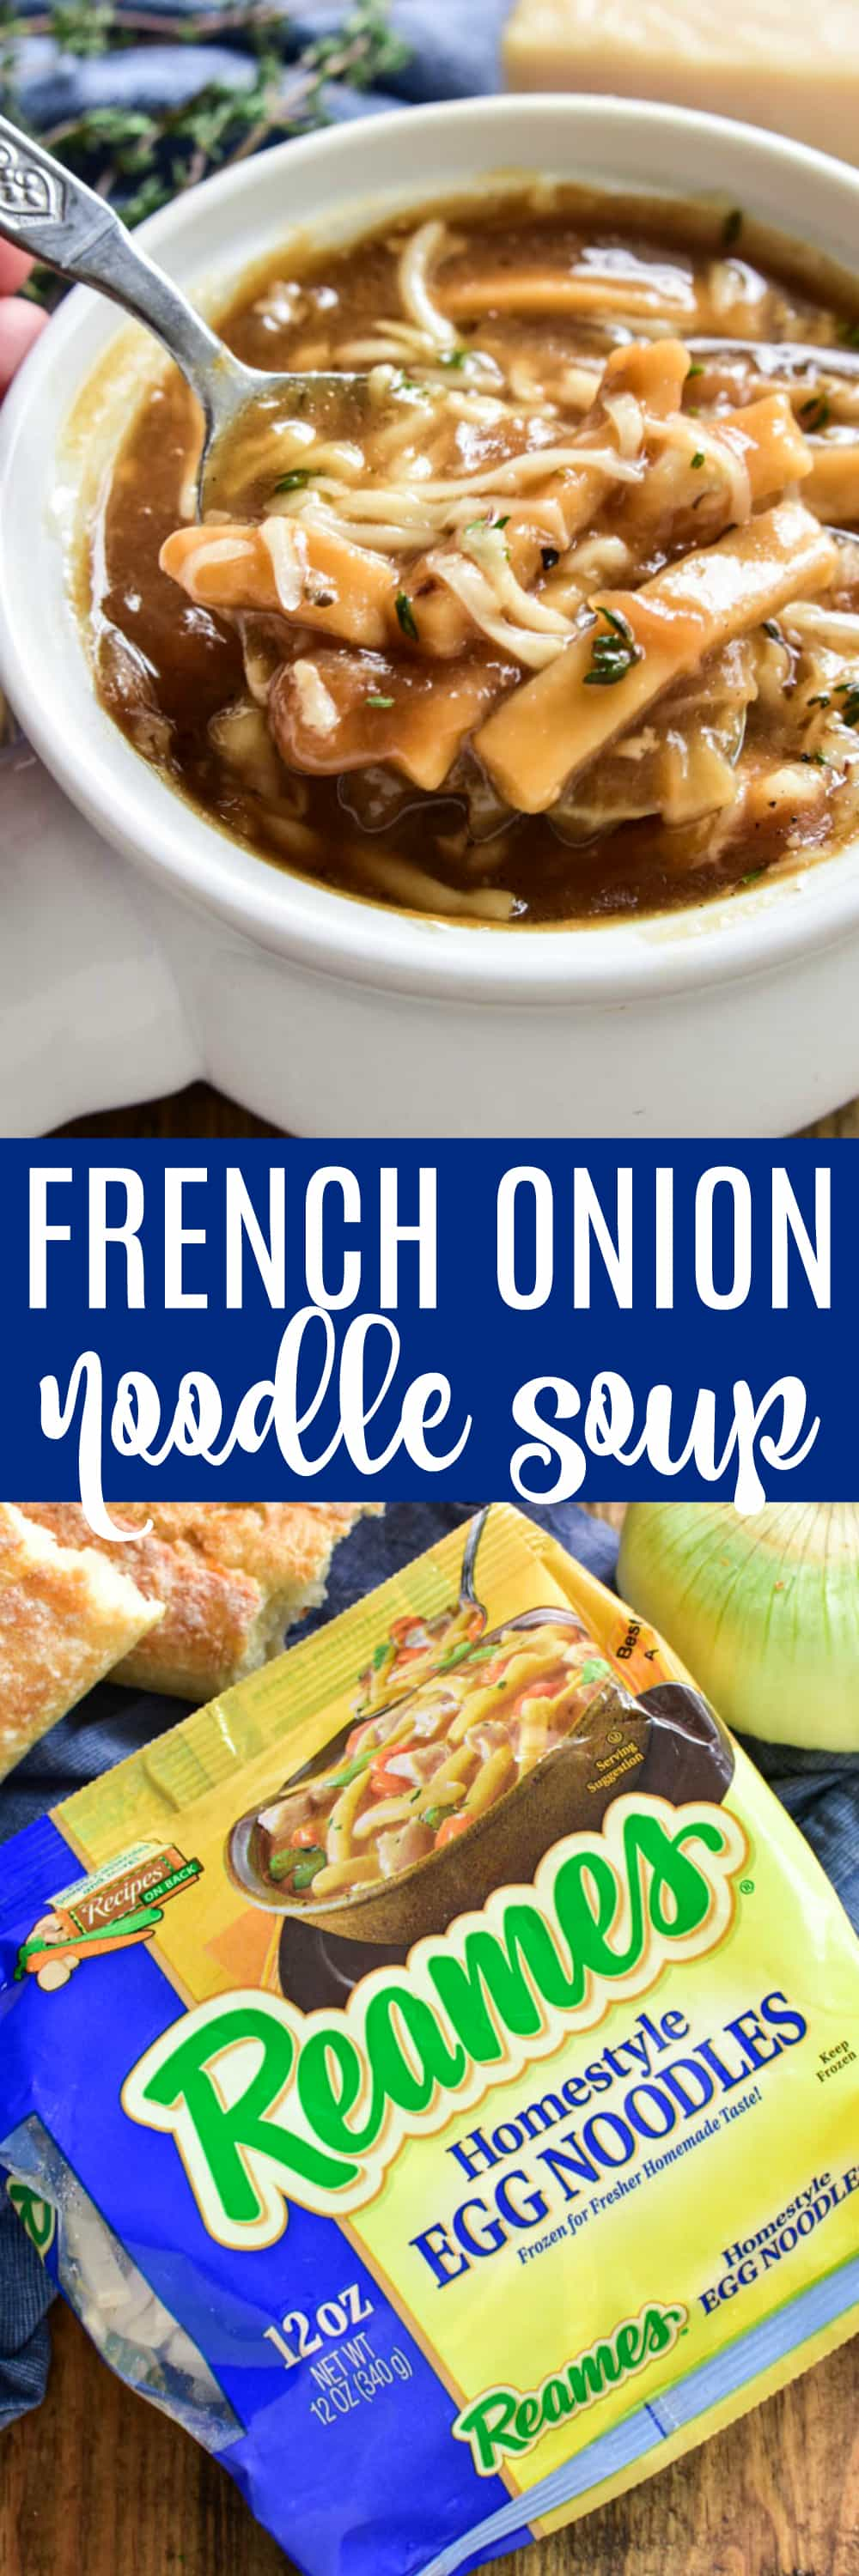 Take your love of soup to the next level with this delicious French Onion Noodle Soup. All the flavors of the classic French Onion Soup, with the added bonus of noodles! This soup is thick, hearty, and packed with flavor. It makes a great weeknight dinner and is also perfect for serving to guests or cozying up to on a lazy fall weekend. If you love French Onion Soup, you're going to fall in love with this comforting, delicious twist!